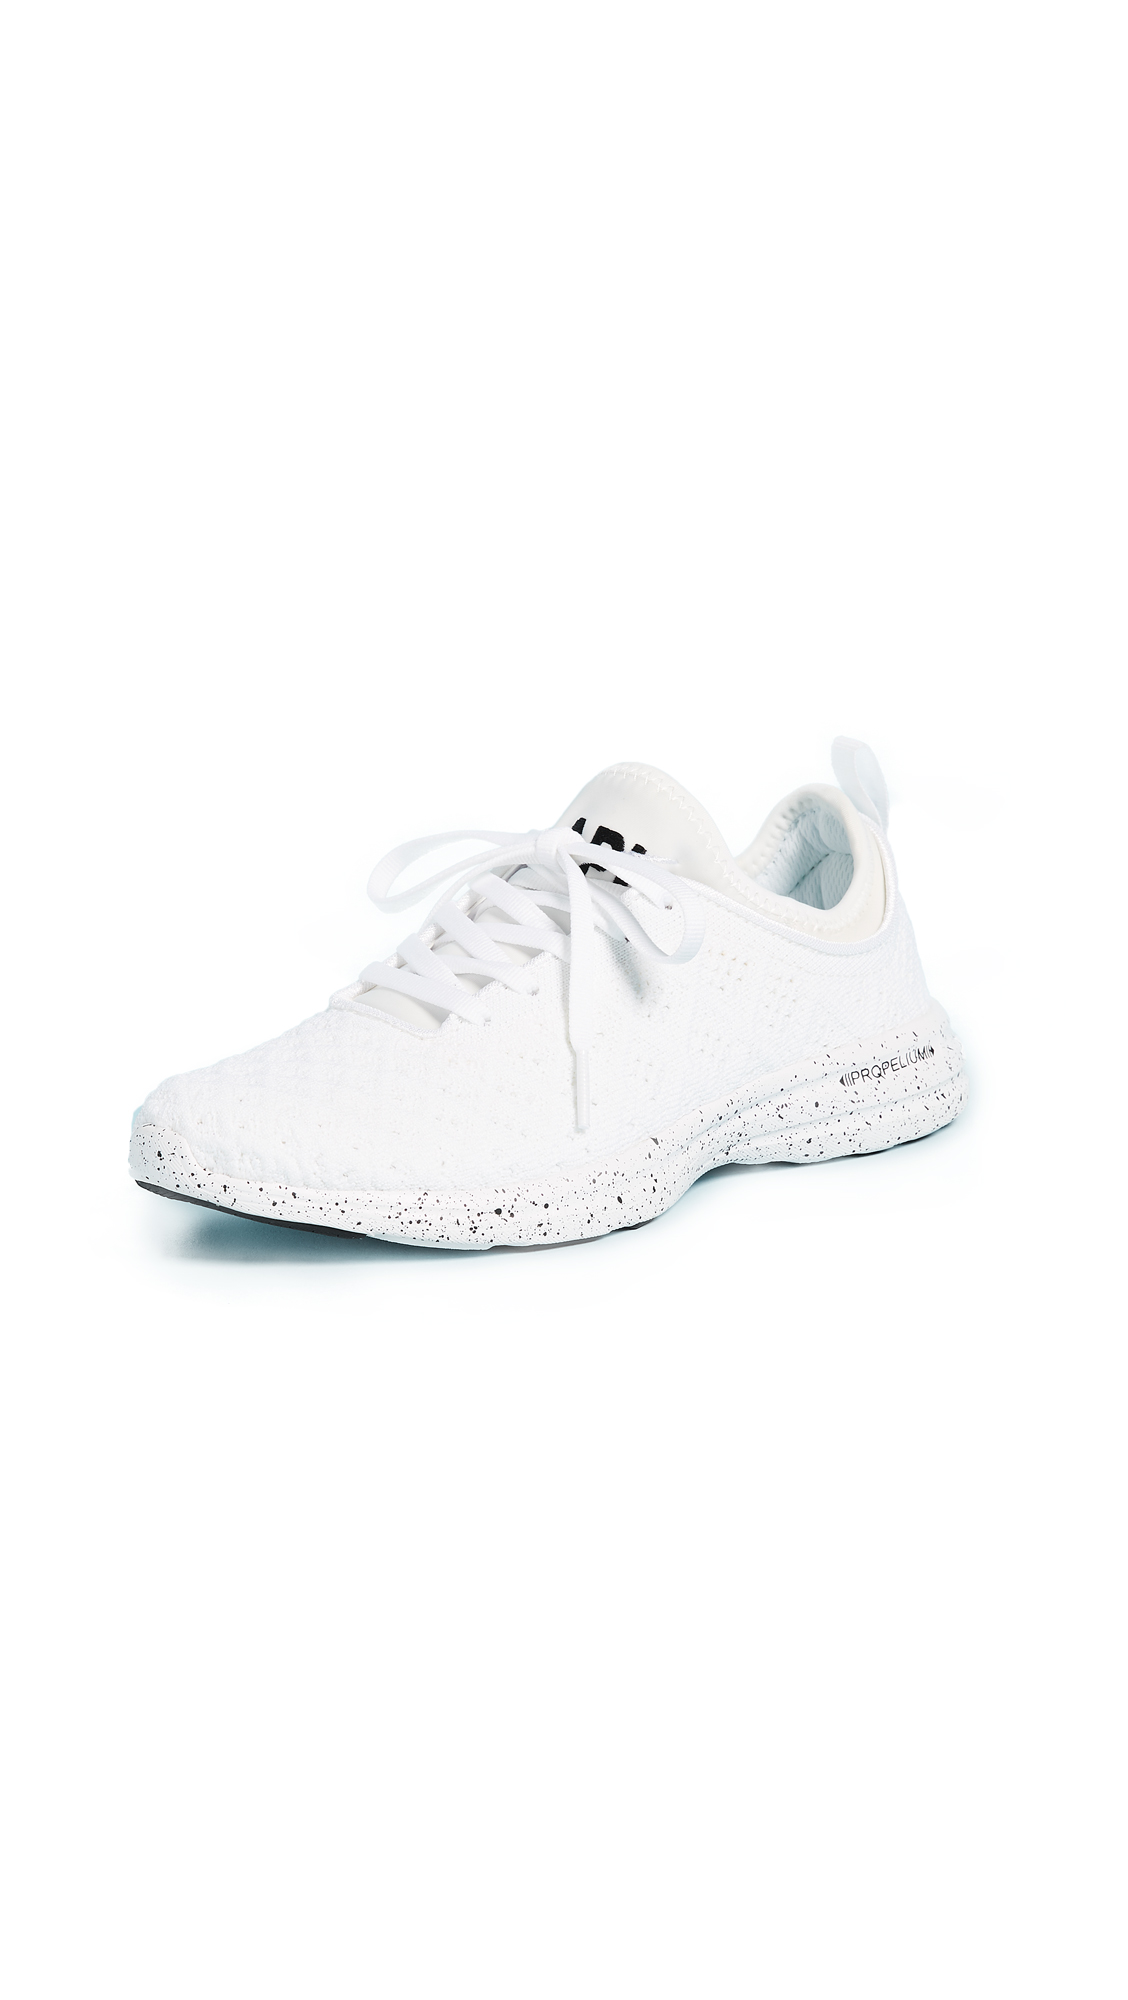 APL: Athletic Propulsion Labs TechLoom Phantom Sneakers - White/Black Speckle